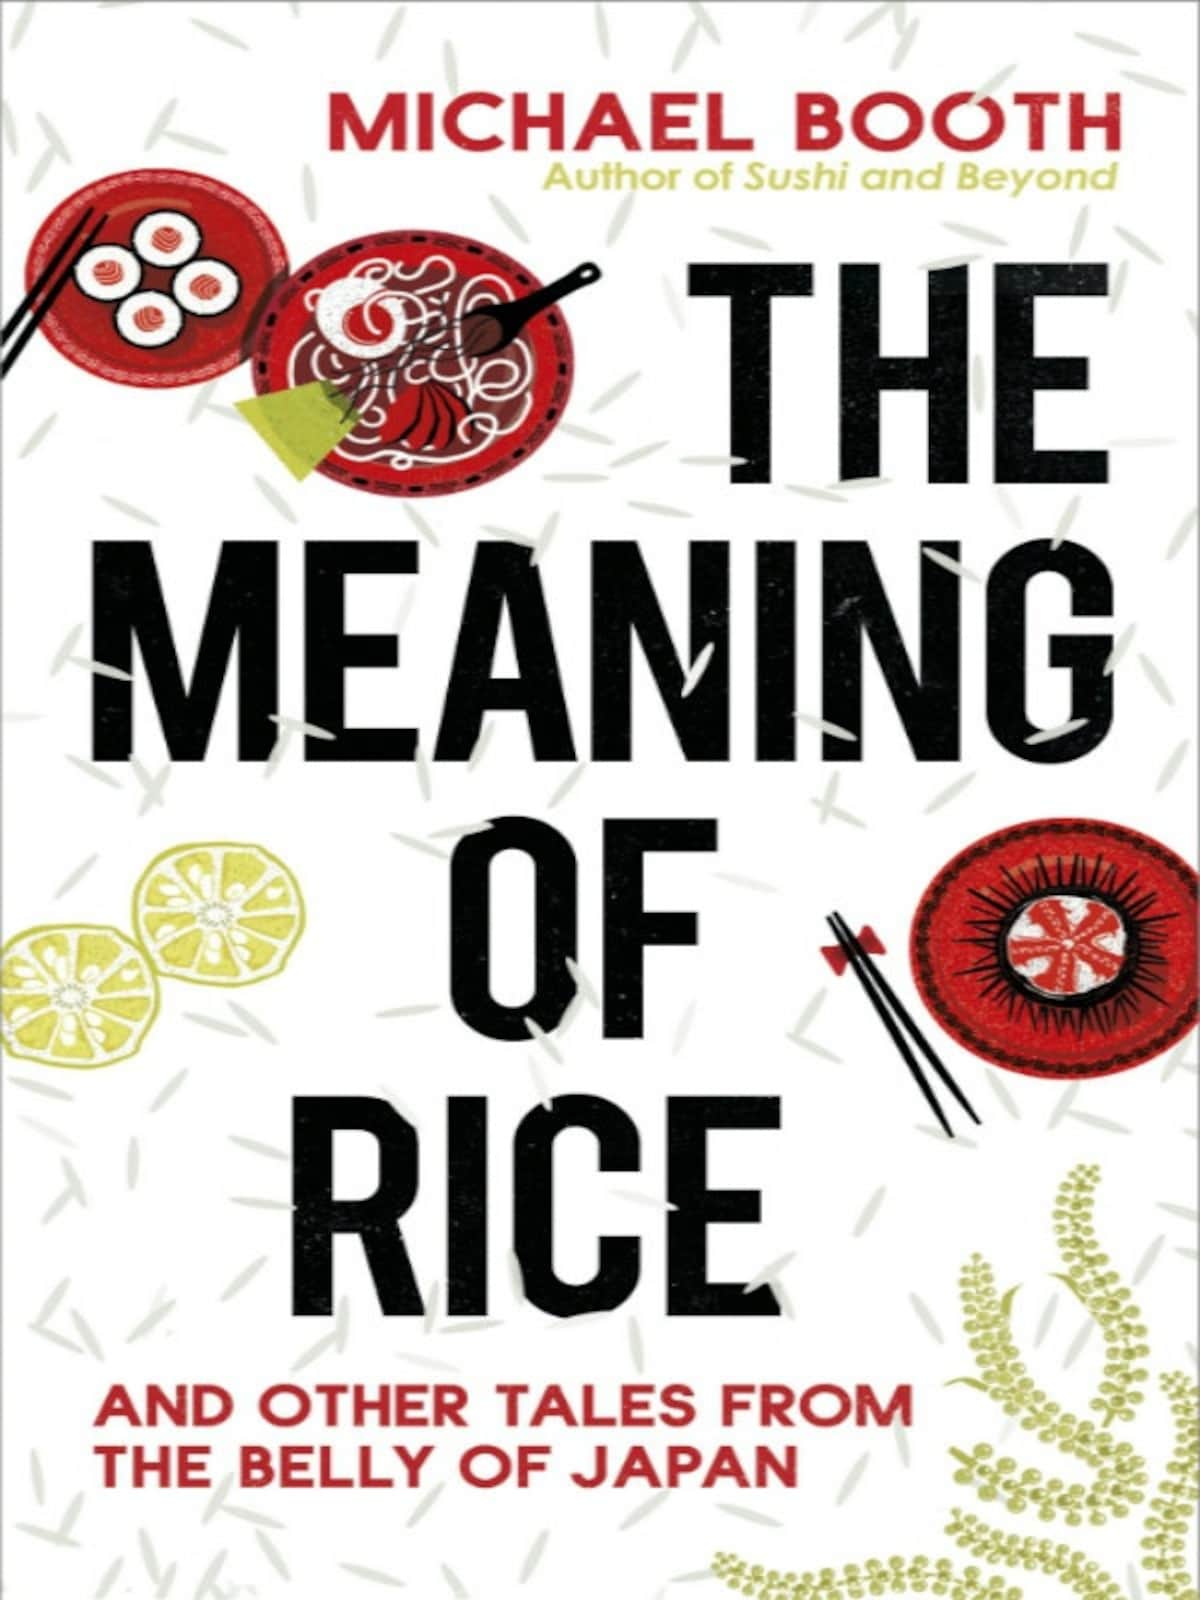 5. The Meaning of Rice & Other Tales from the Belly of Japan by Michael Booth